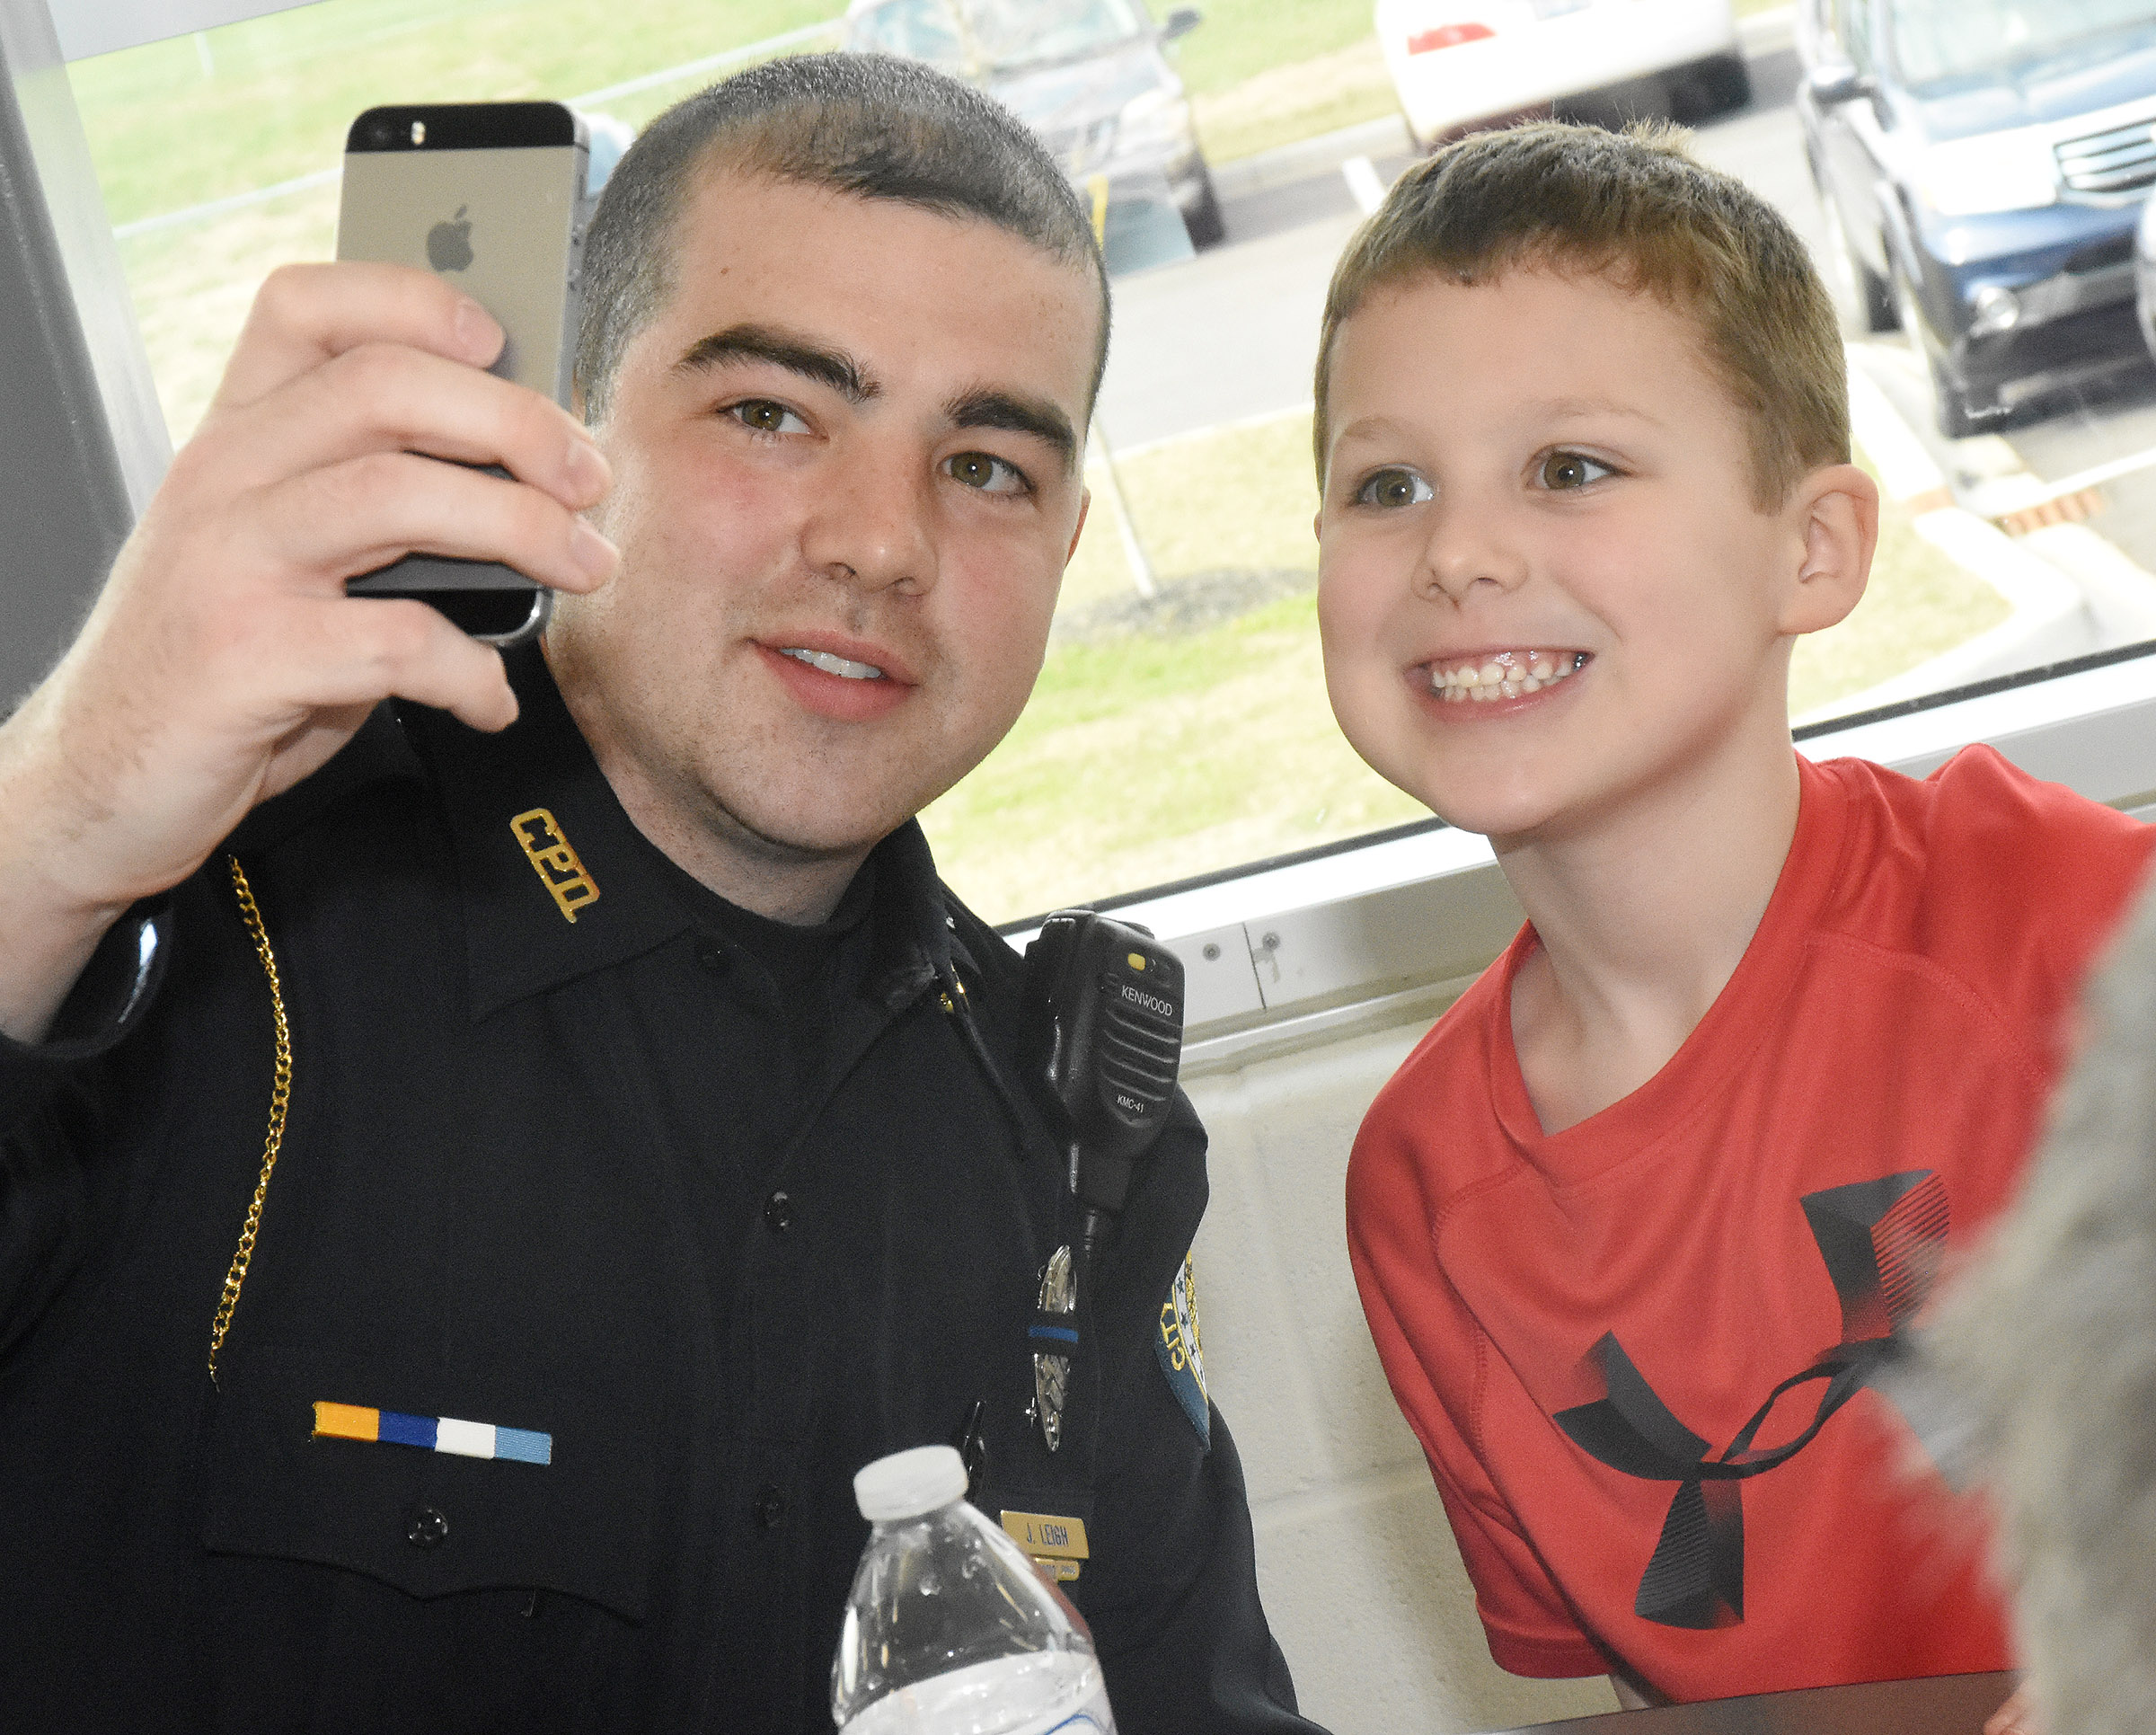 CES kindergartener Kyler Wilson takes a selfie with Campbellsville Police Officer Jonathan Leigh.